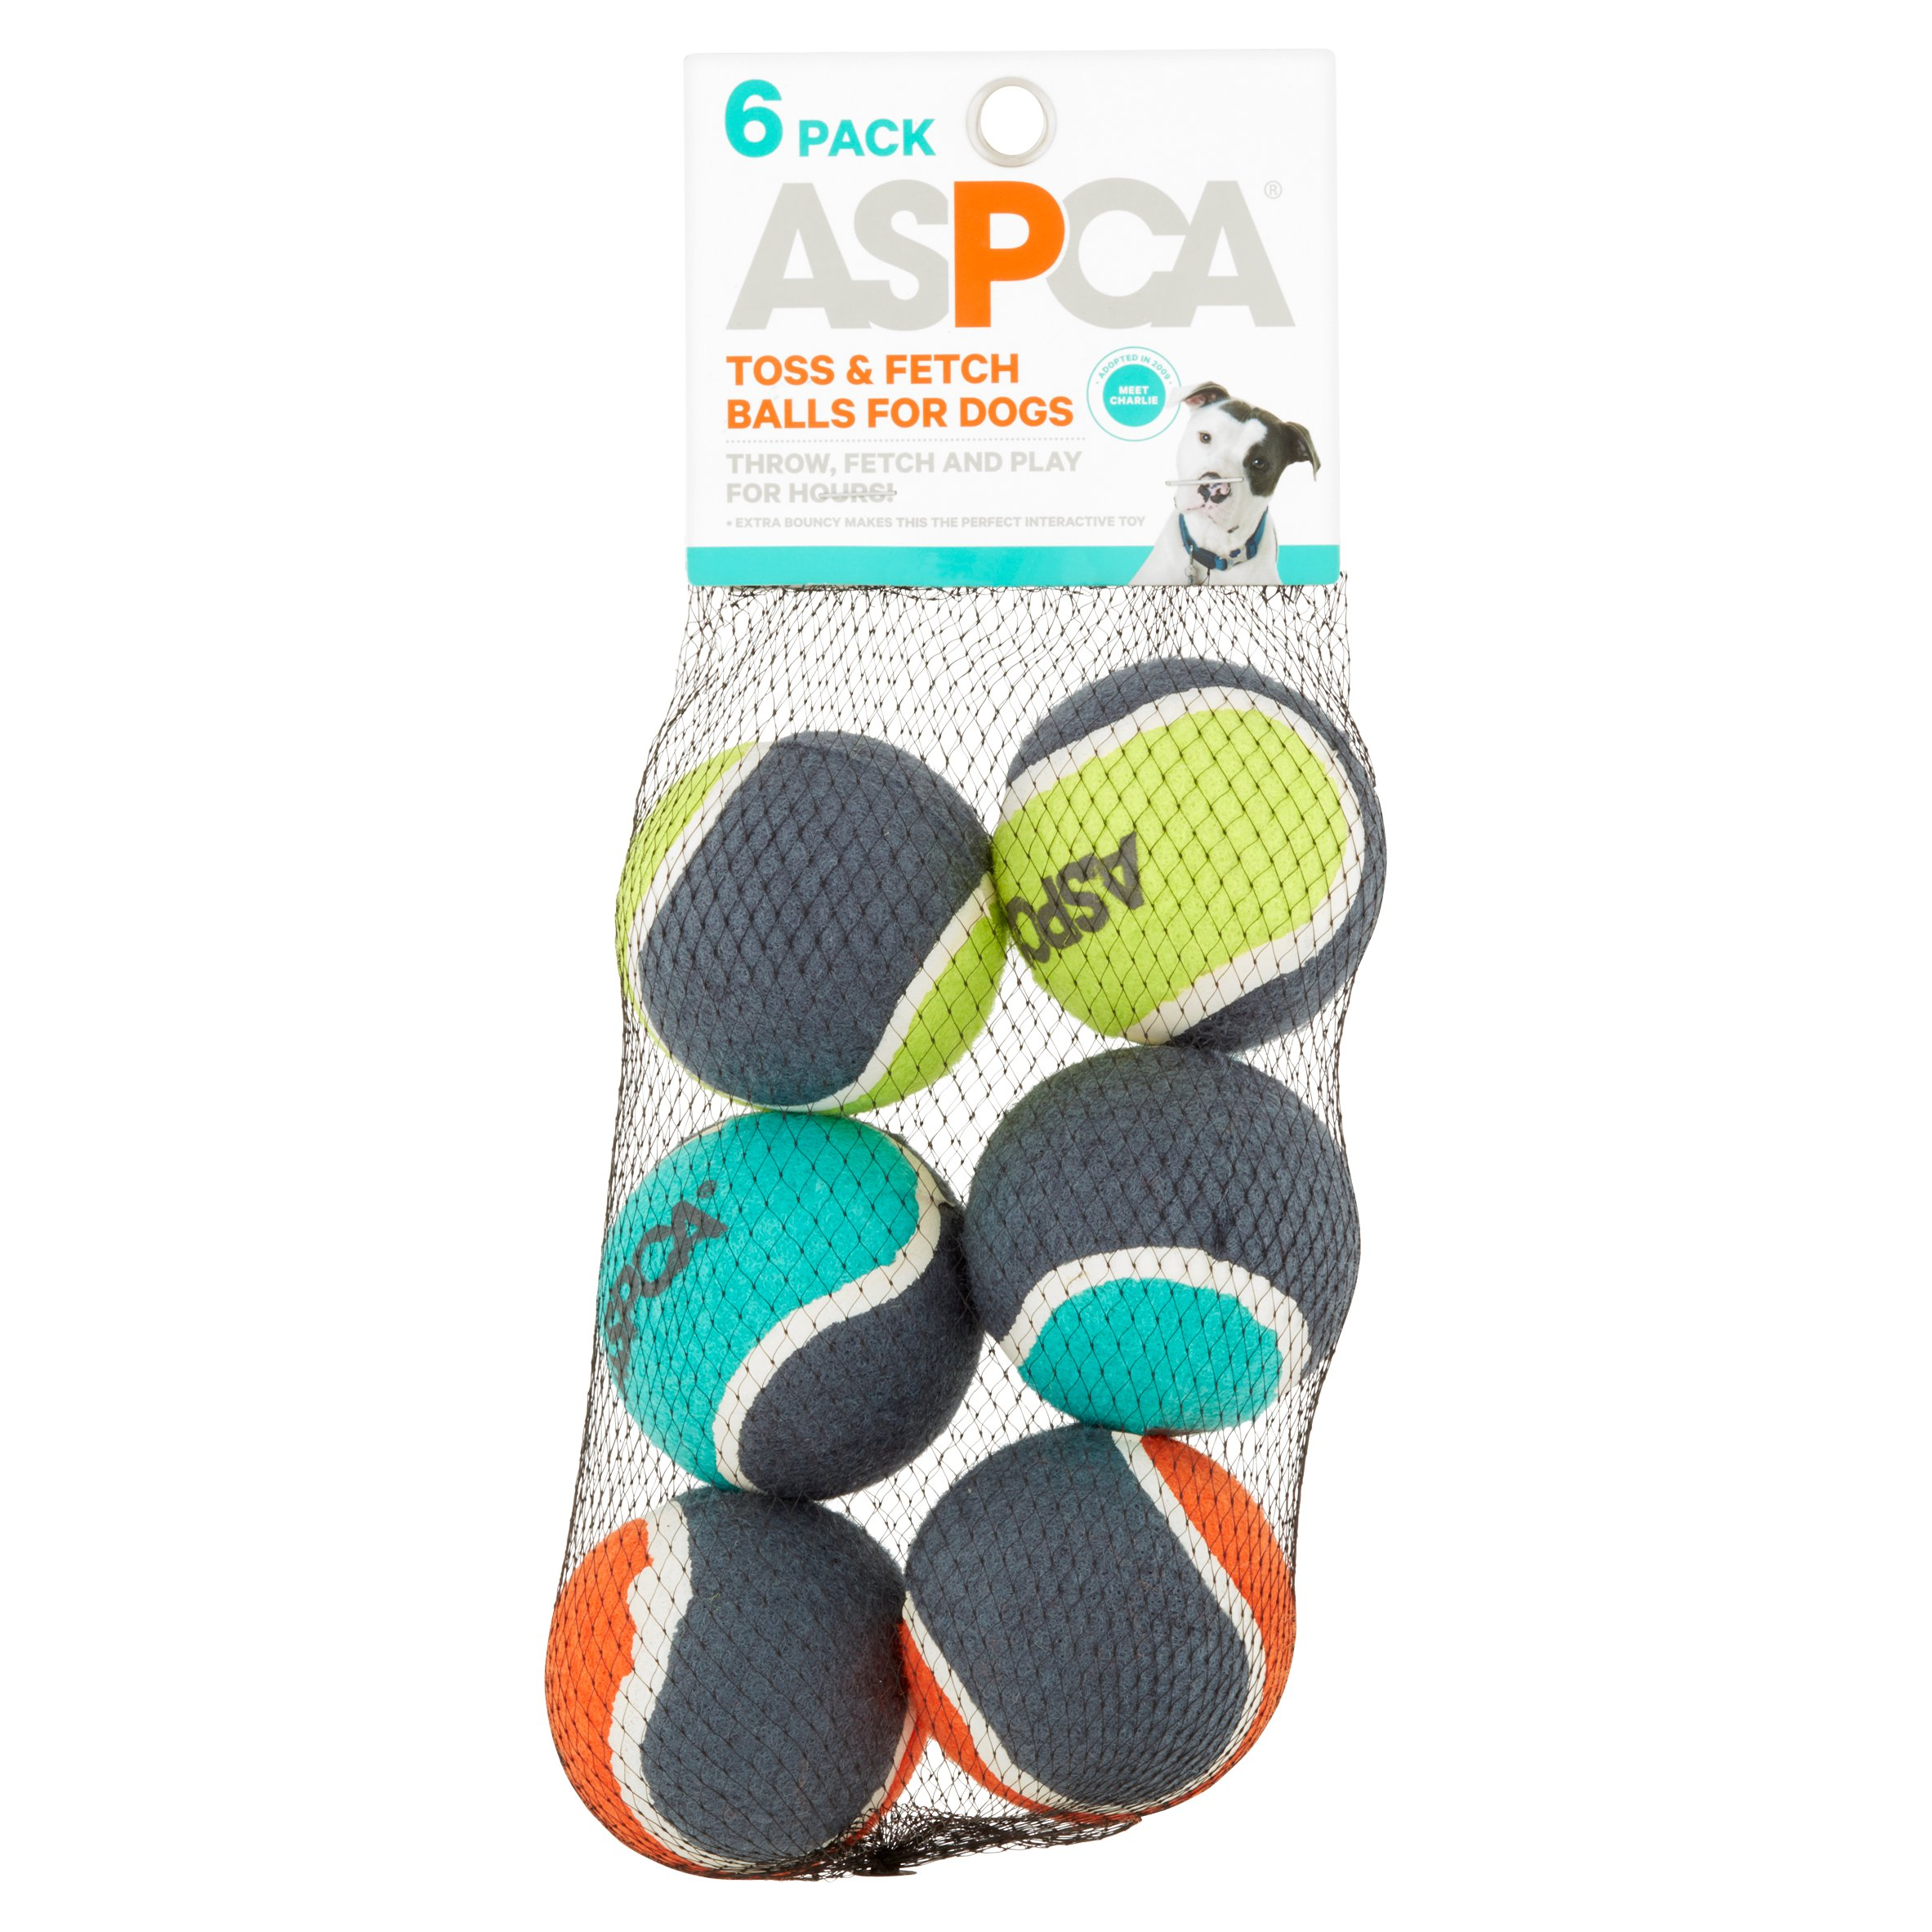 Aspca Tennis Ball toss & Fetch Balls Dog Toy, 6 Ct, Mulicolor